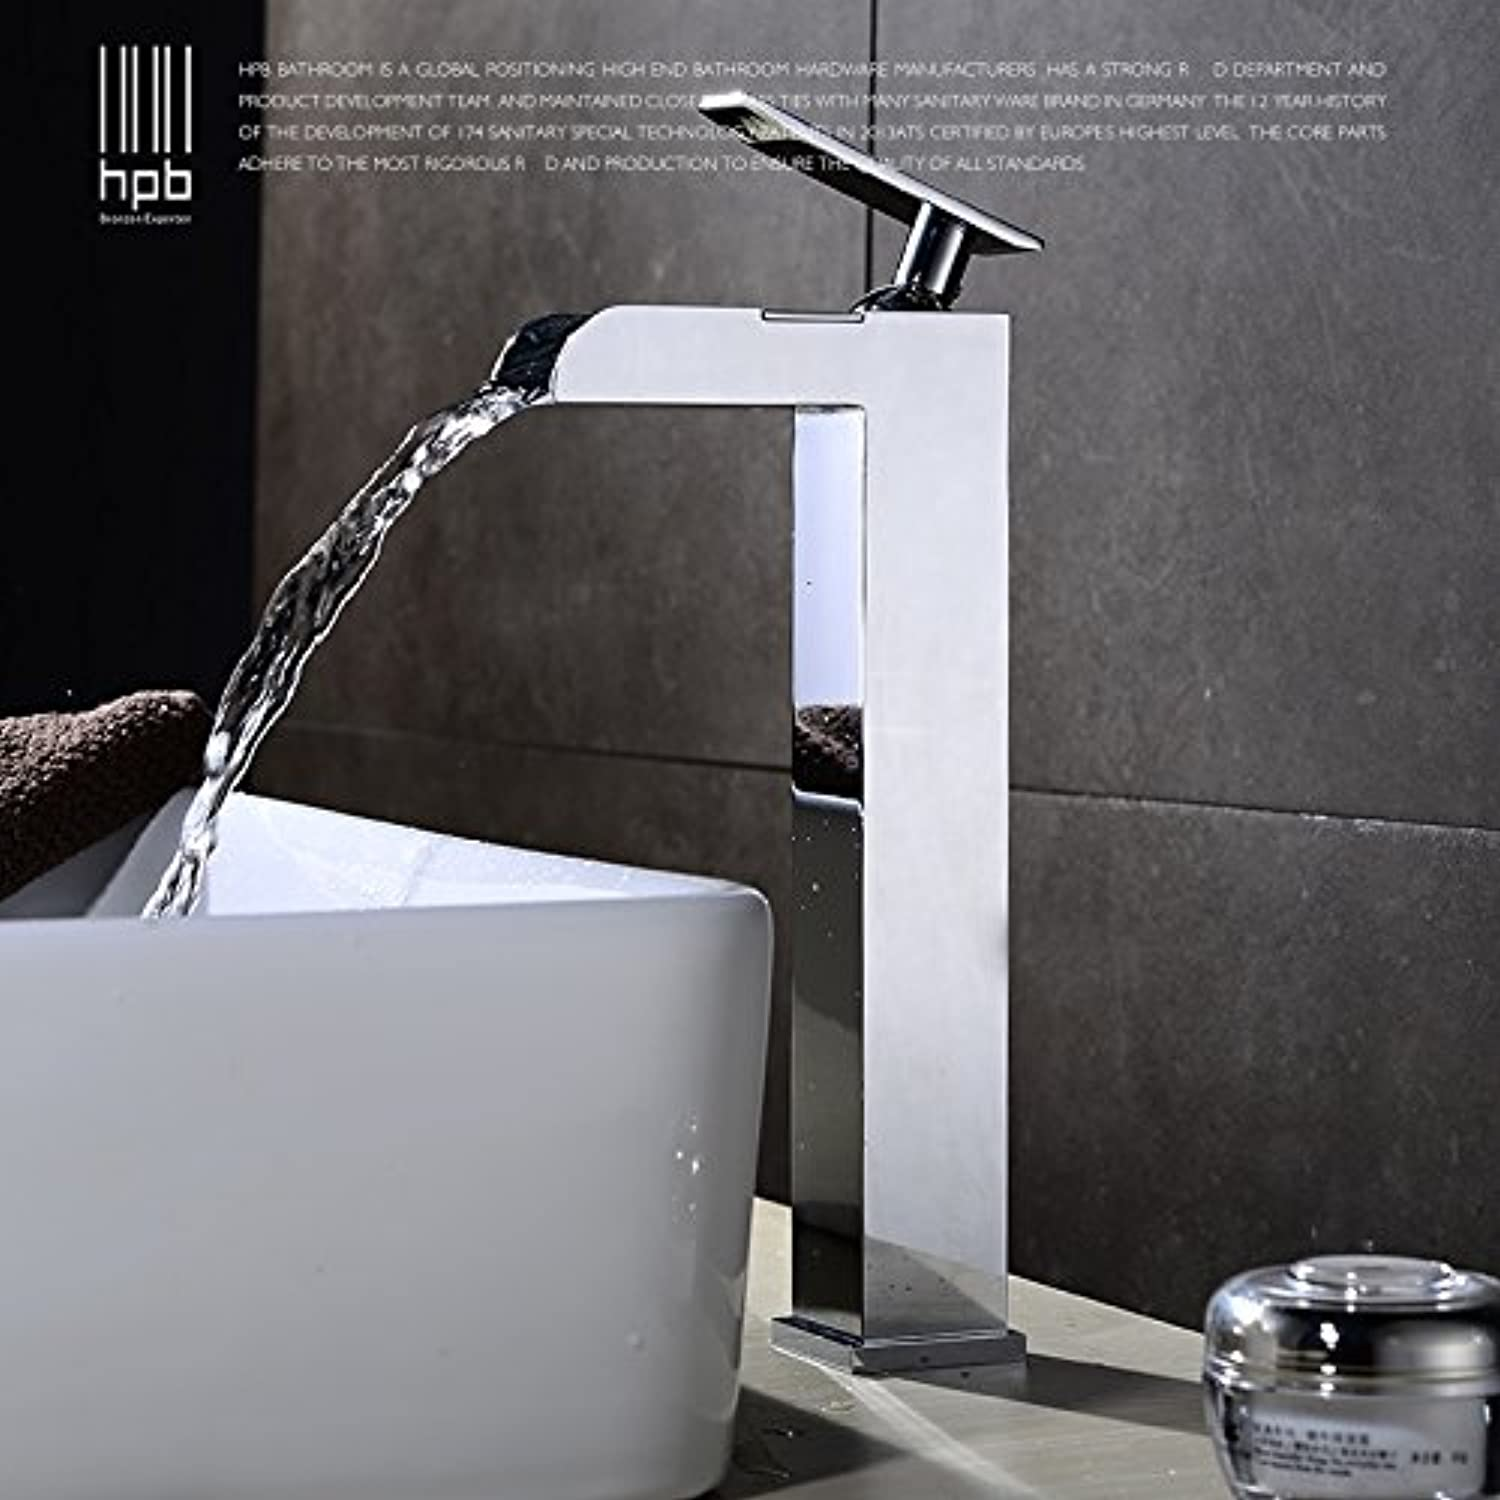 Hlluya Professional Sink Mixer Tap Kitchen Faucet The copper hot and cold waterfall surface basin mixer with high basin vanity area with 盆 basin faucet, High, HP3116